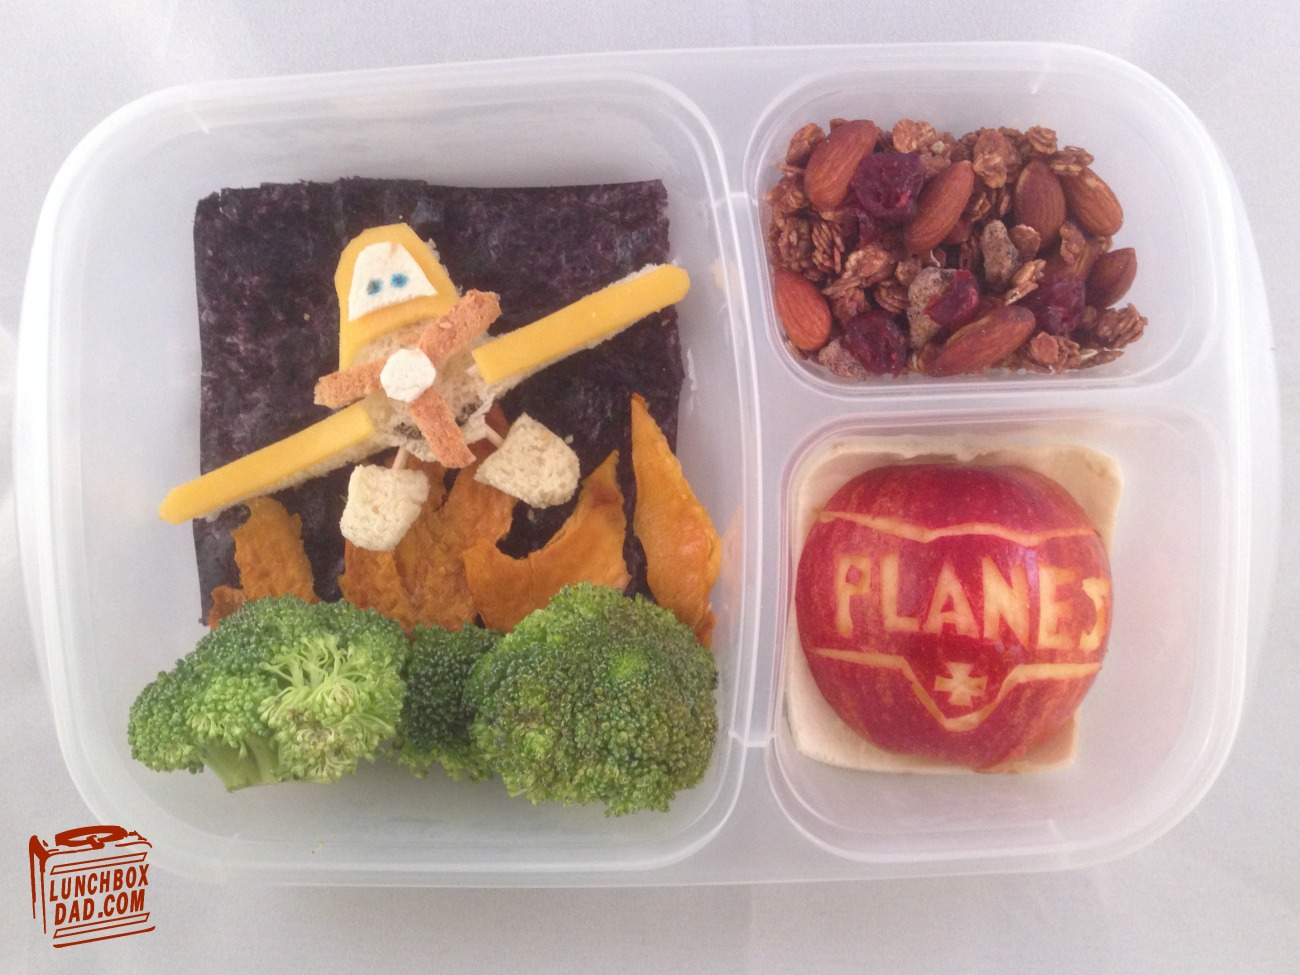 Planes Bento Lunch